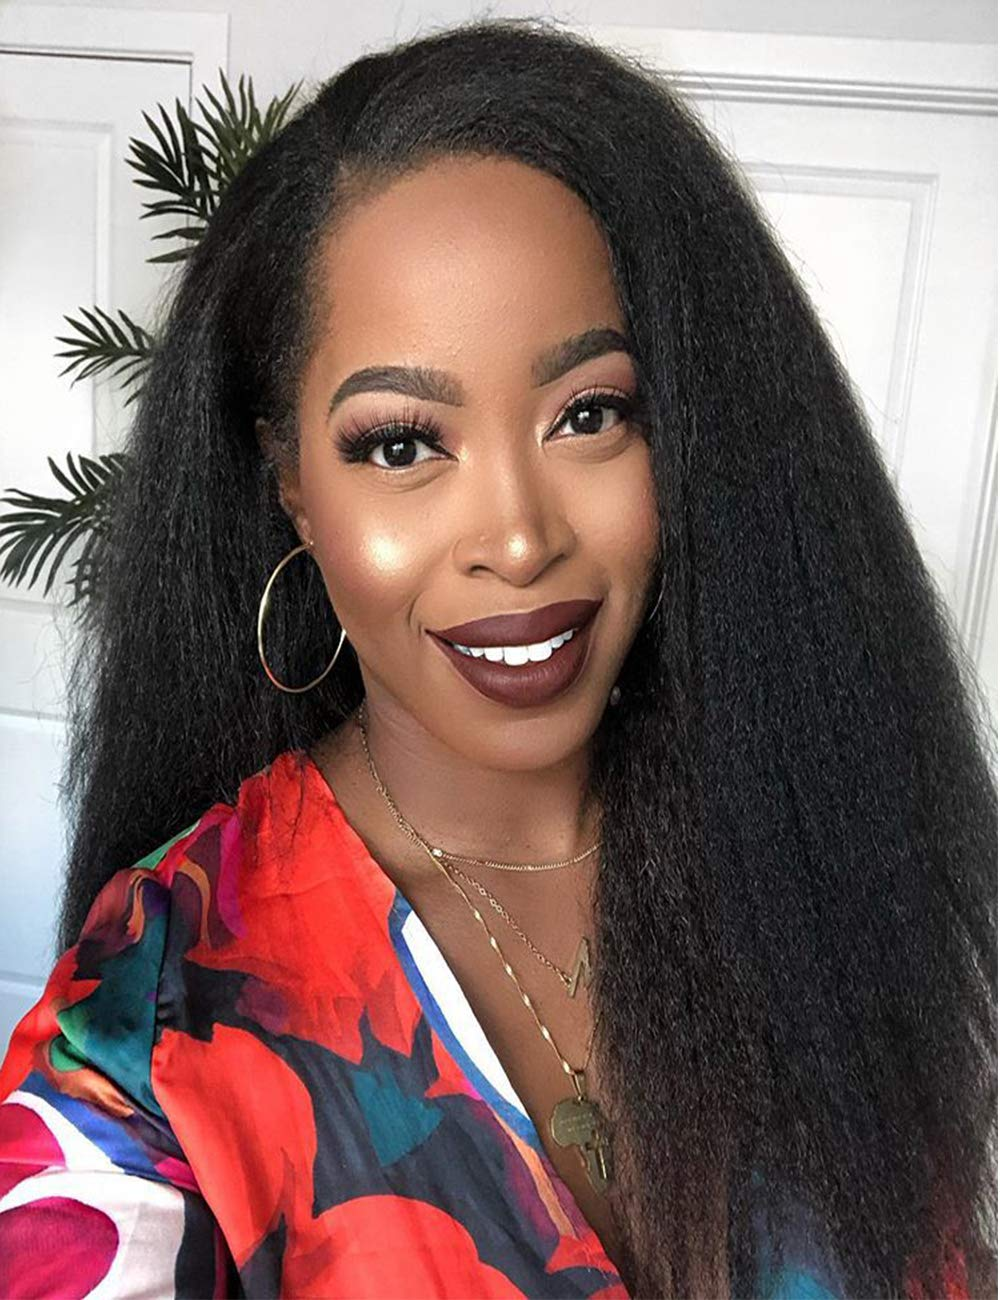 Chantiche Natural Looking Italian Yaki Lace Front Wigs Best Brazilian Remy Human Hair Wigs with Baby Hair for African Americans 130 Density 20 Inch Natural Color